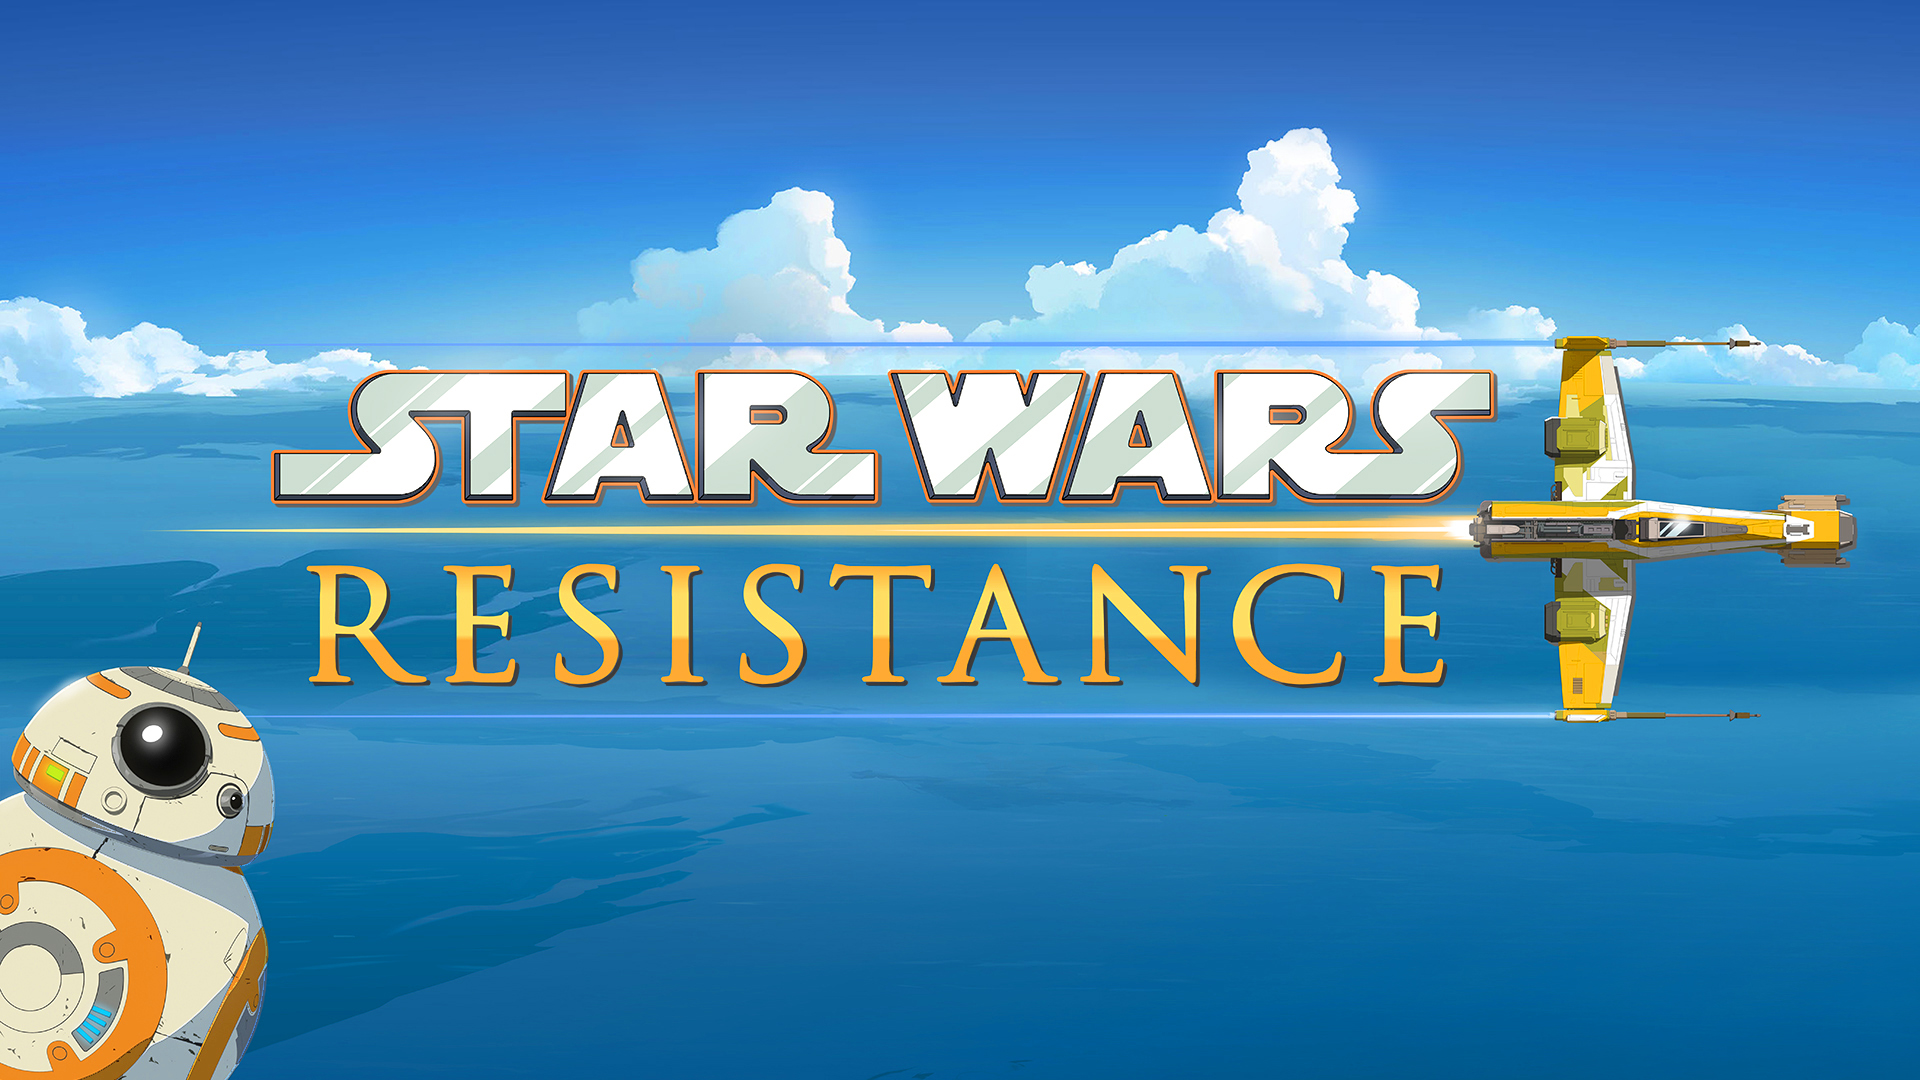 Star Wars Resistance, New Animated Series, Set for Fall TV